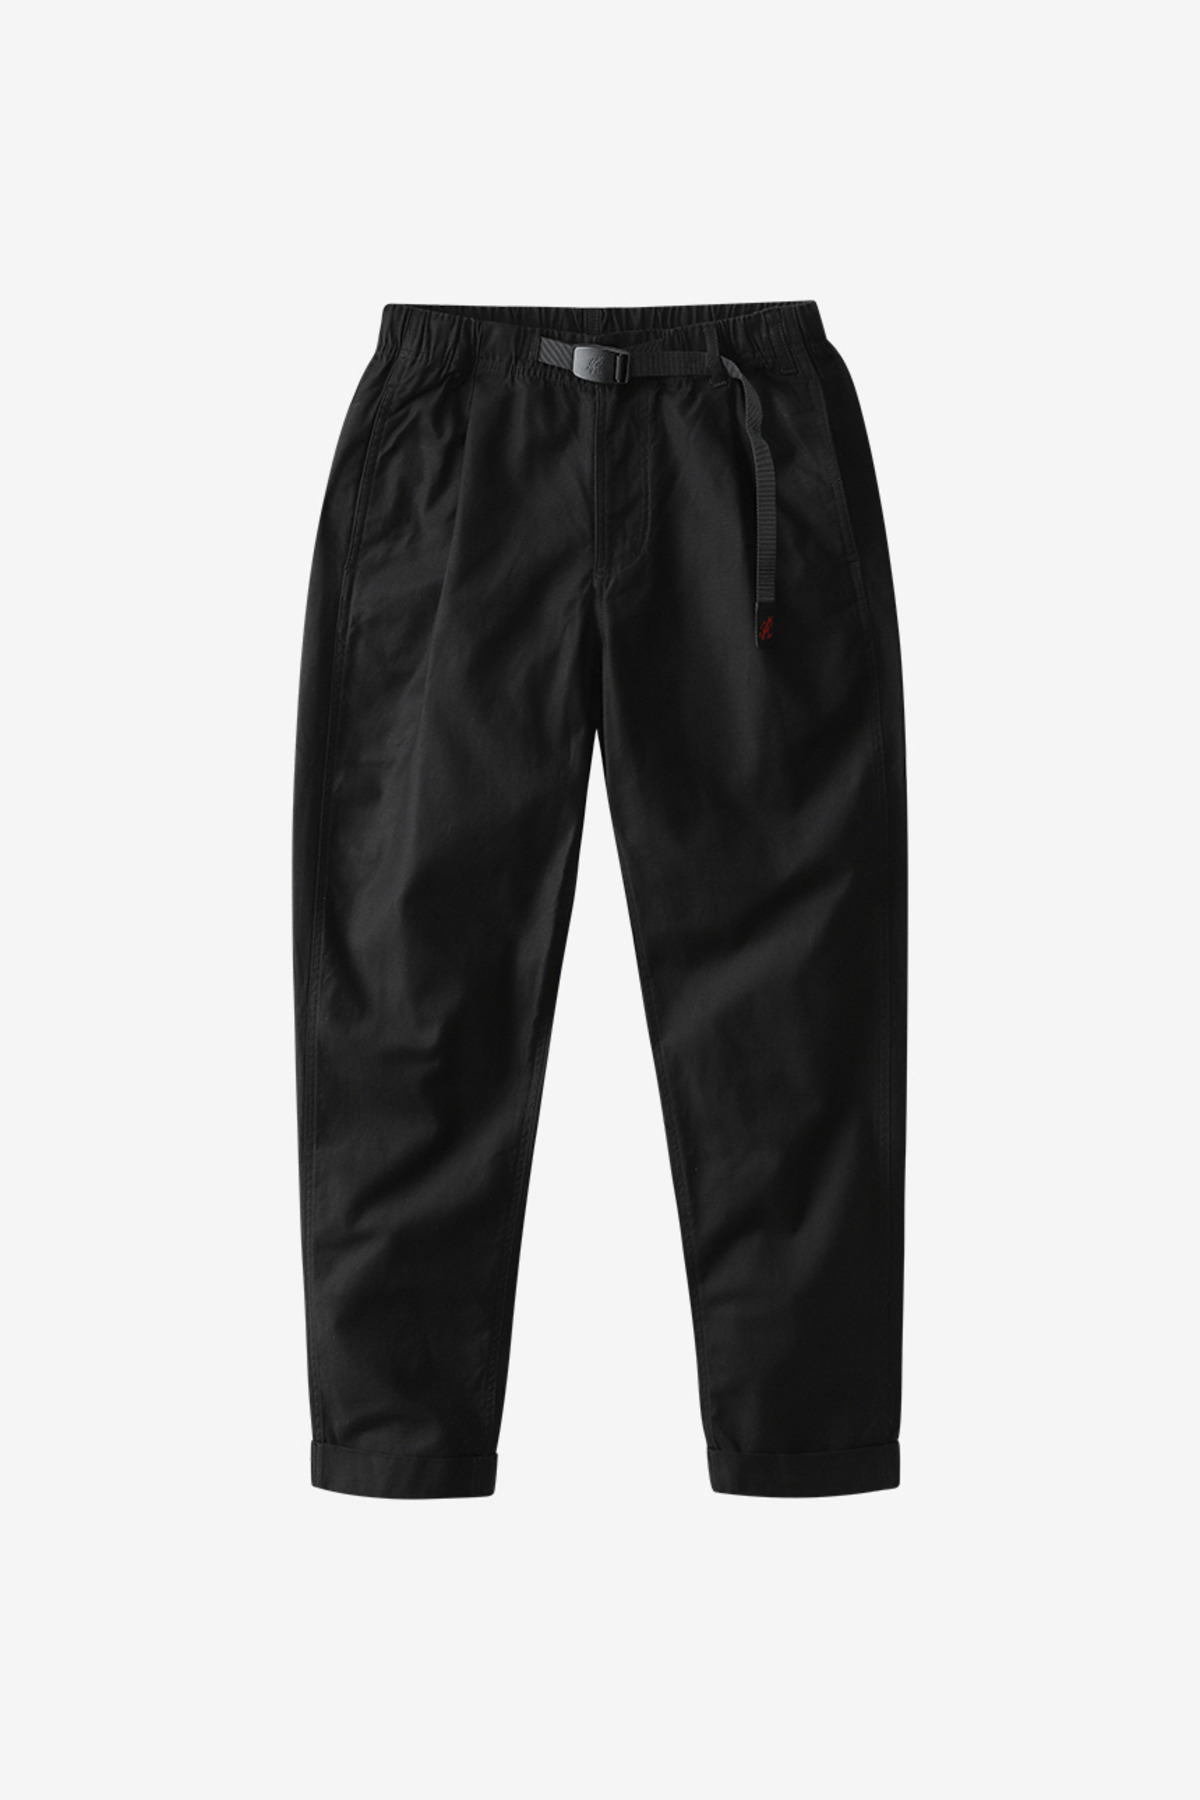 BACK SATIN TUCK TAPERED PANTS BLACK